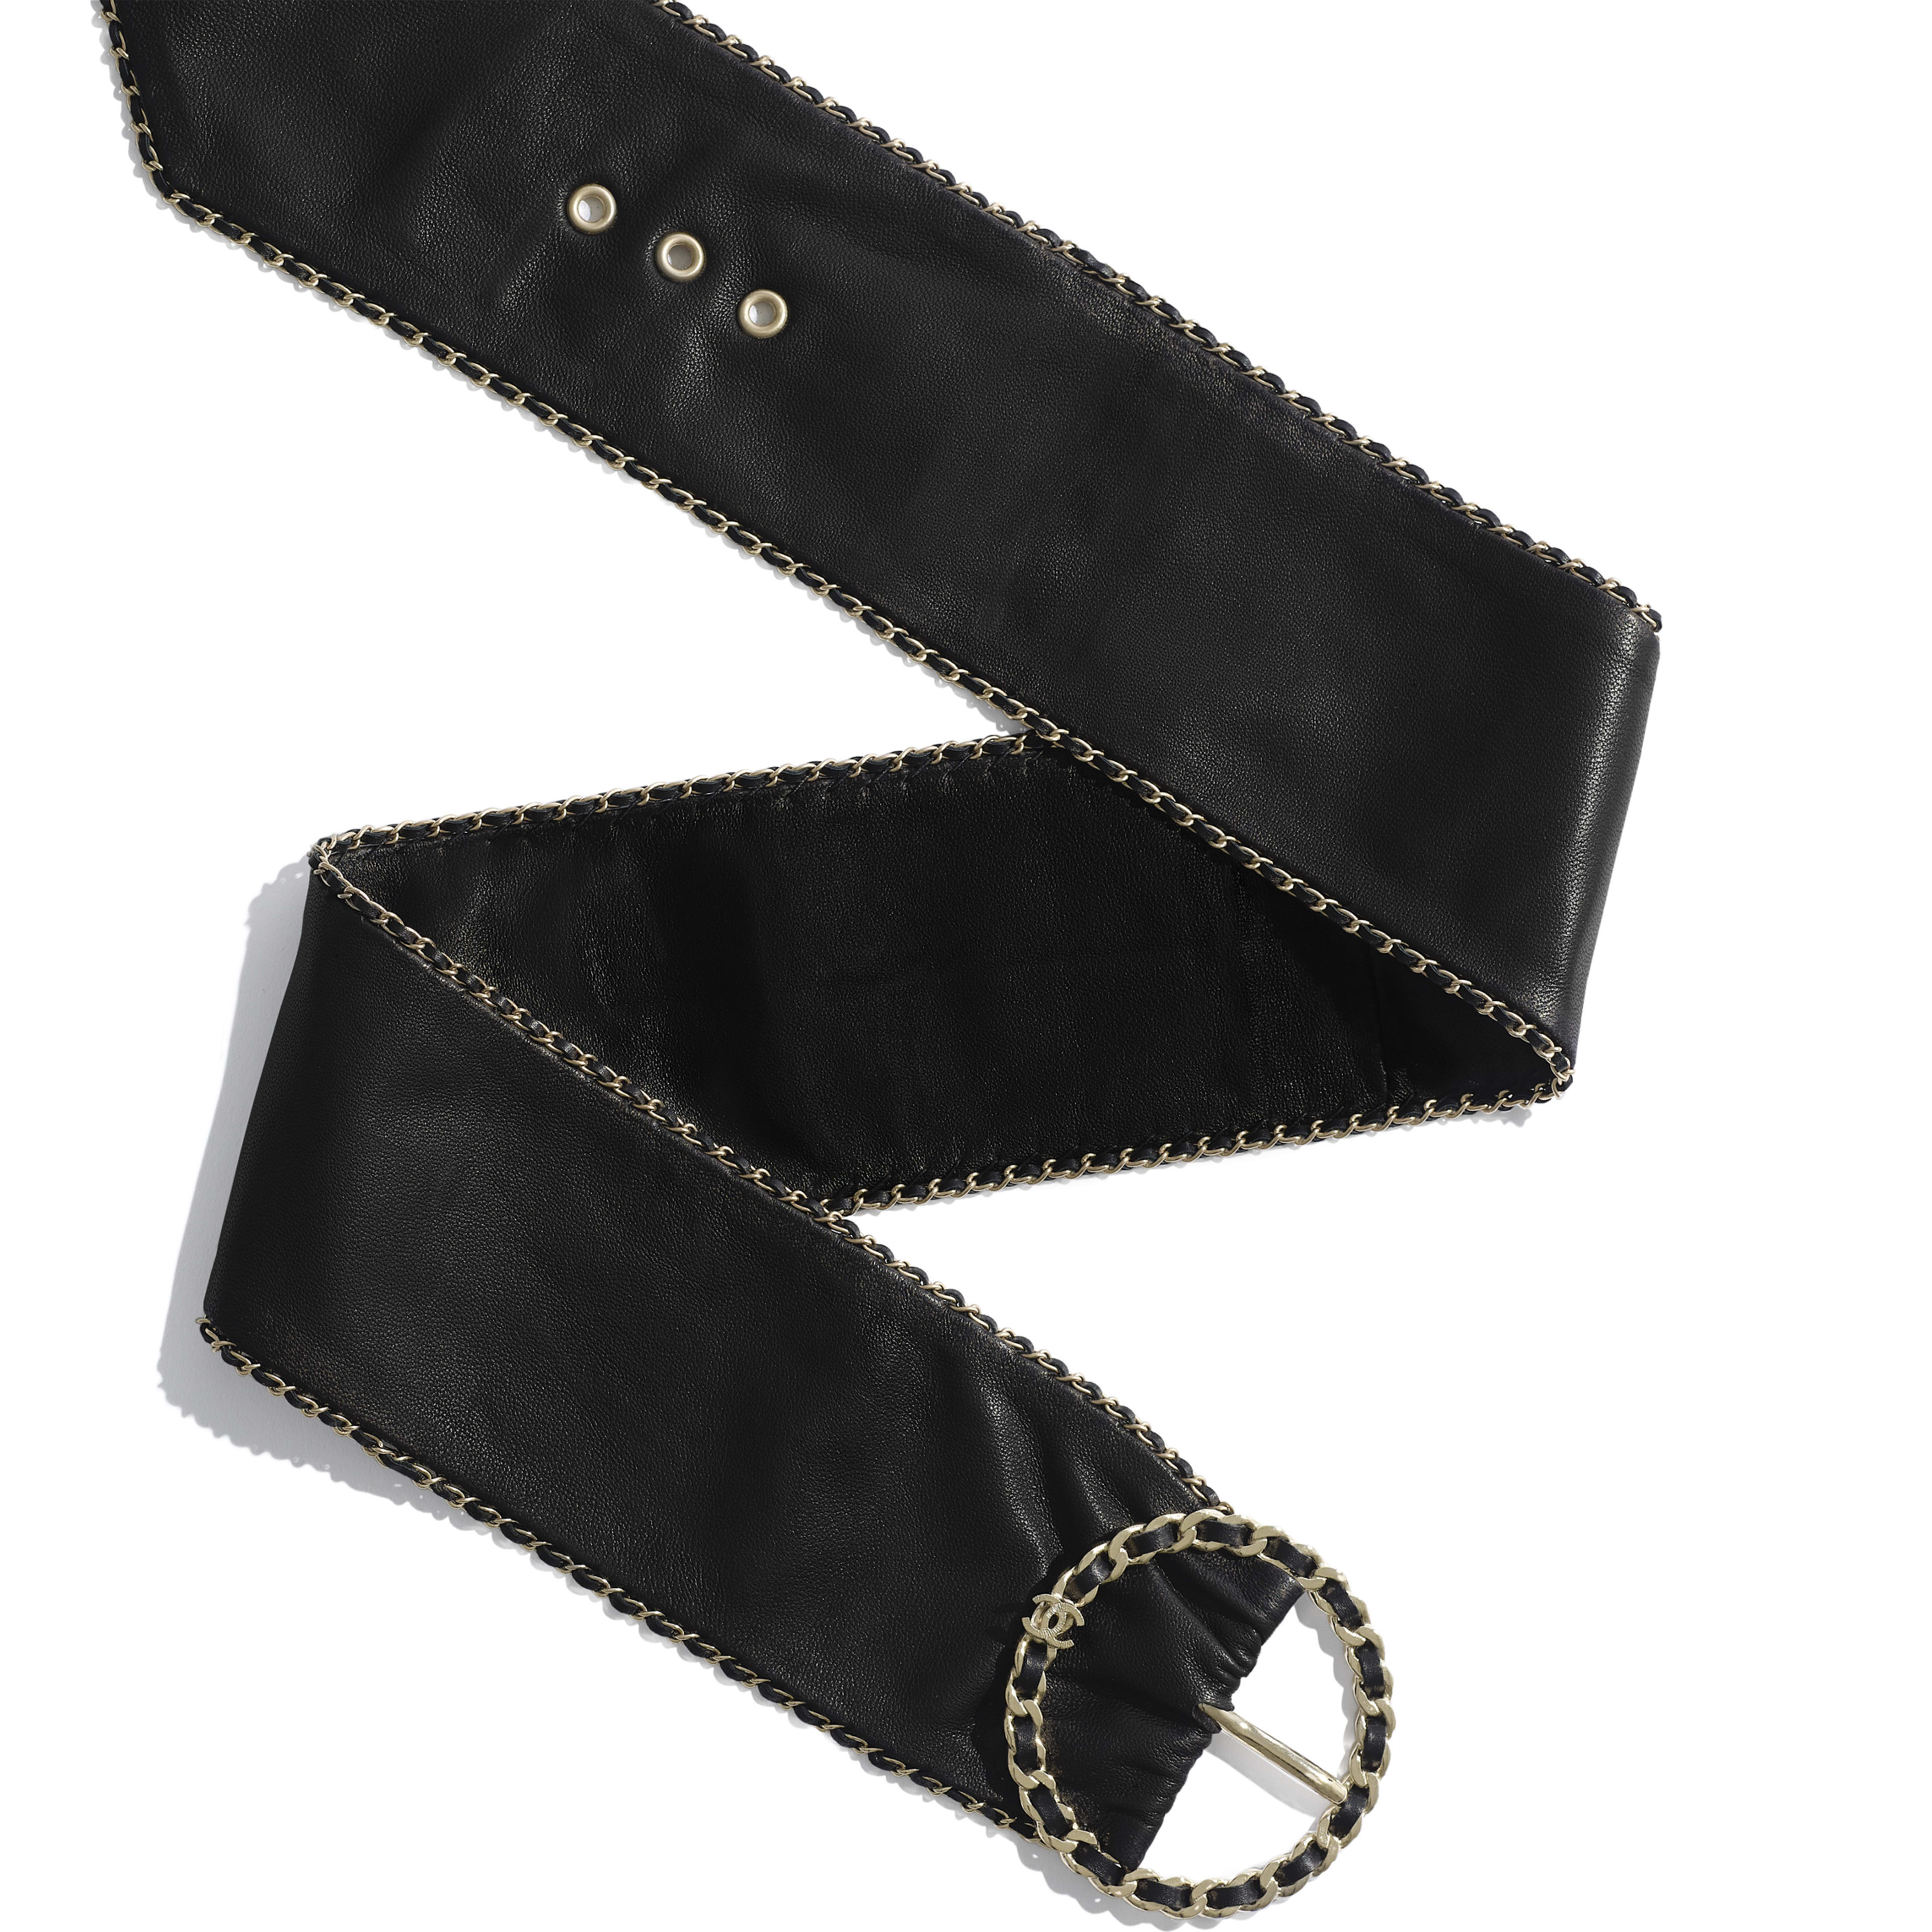 Belt - Black - Lambskin & Gold-Tone Metal - Alternative view - see full sized version